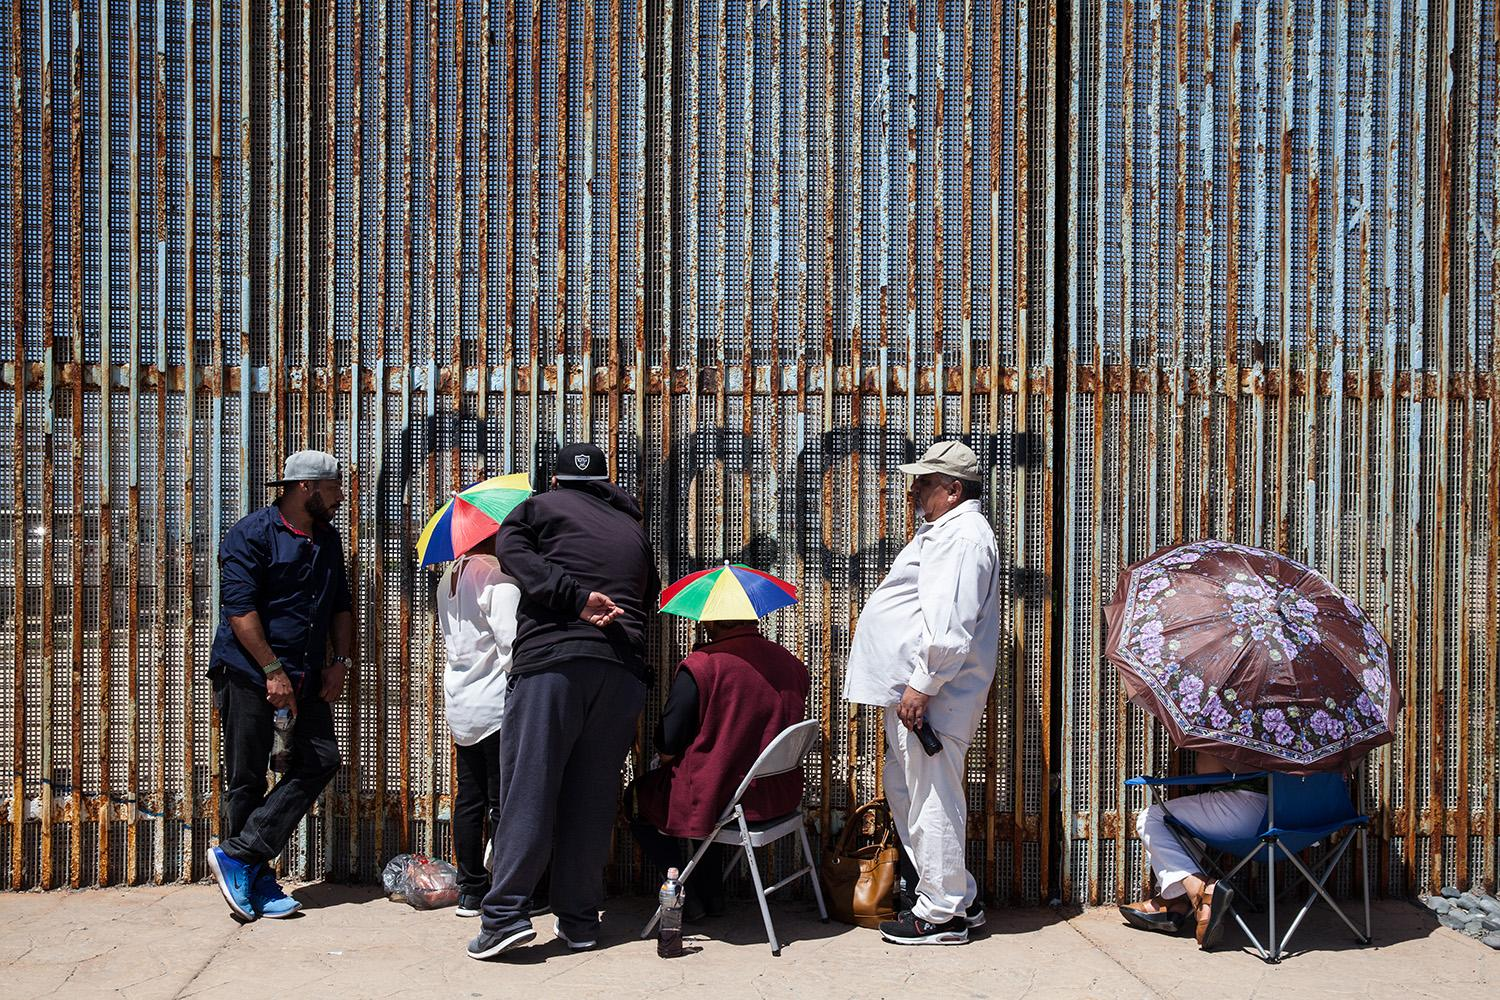 Families at the border fence in Playas de Tijuana, Mexico visit loved ones that are living in the United States.